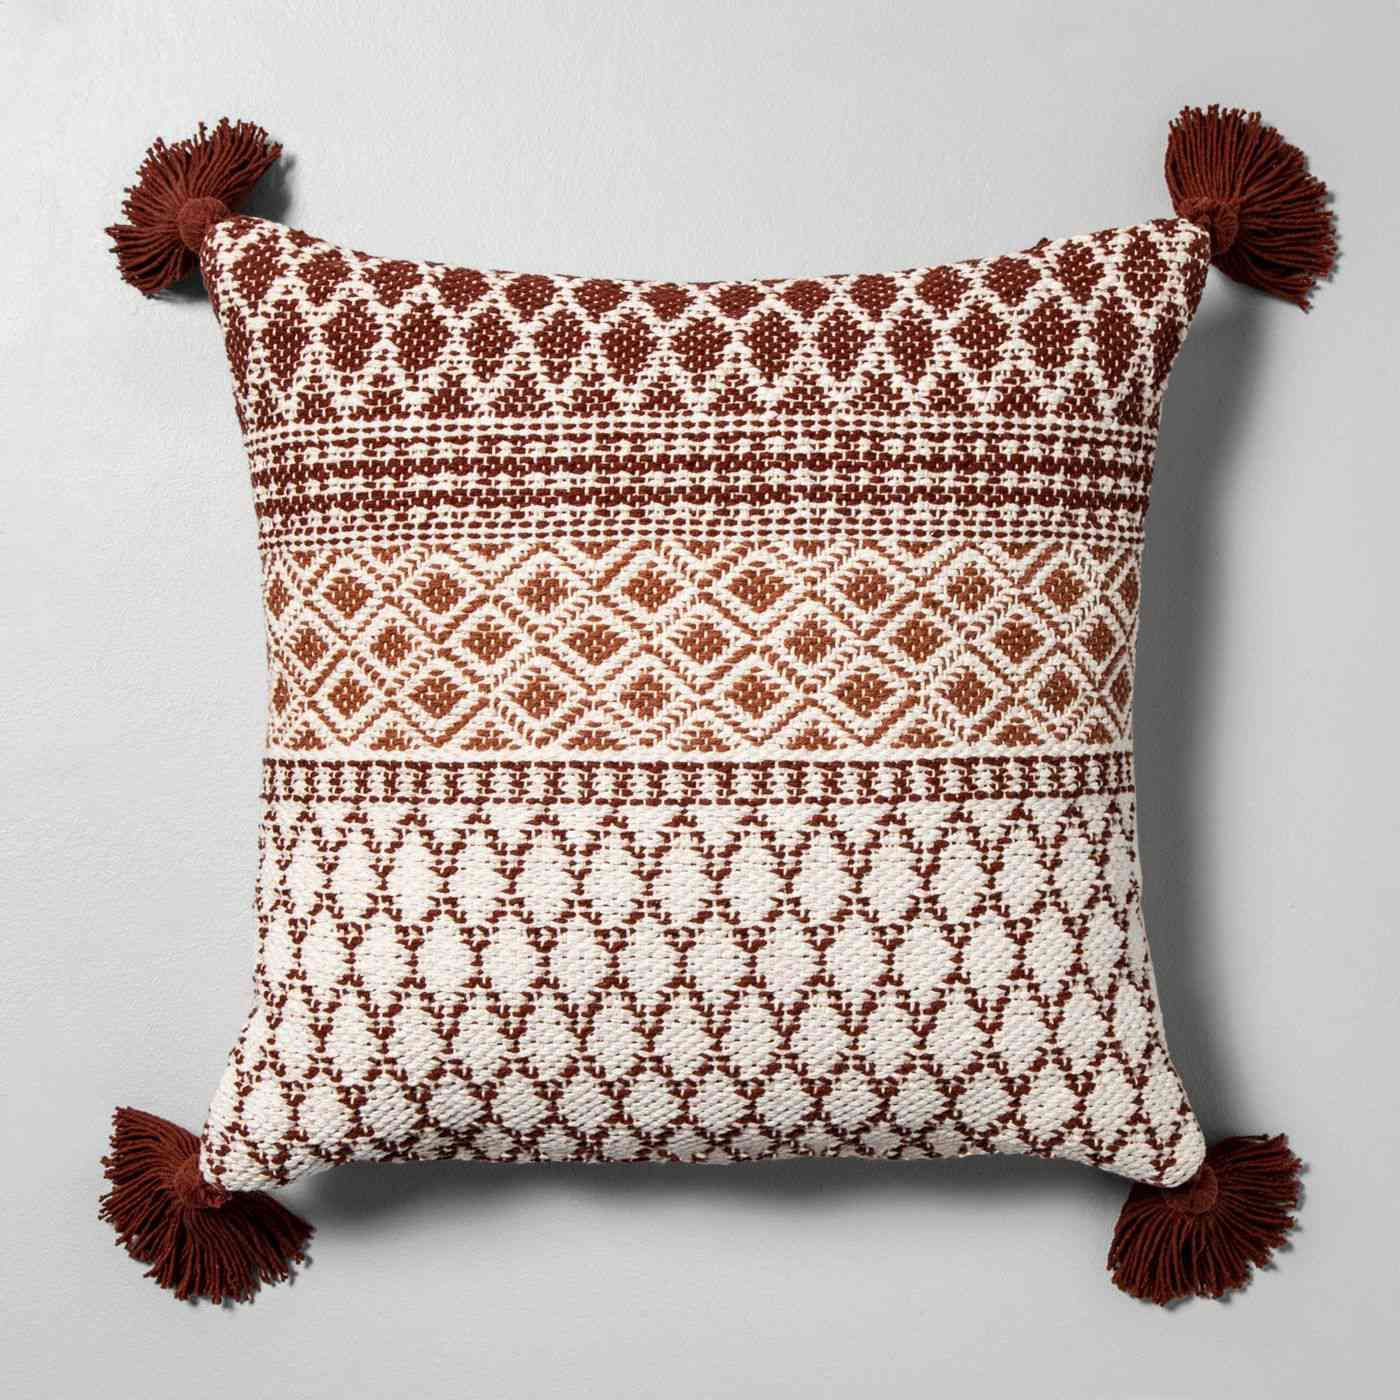 patterned throw pillow with tassels